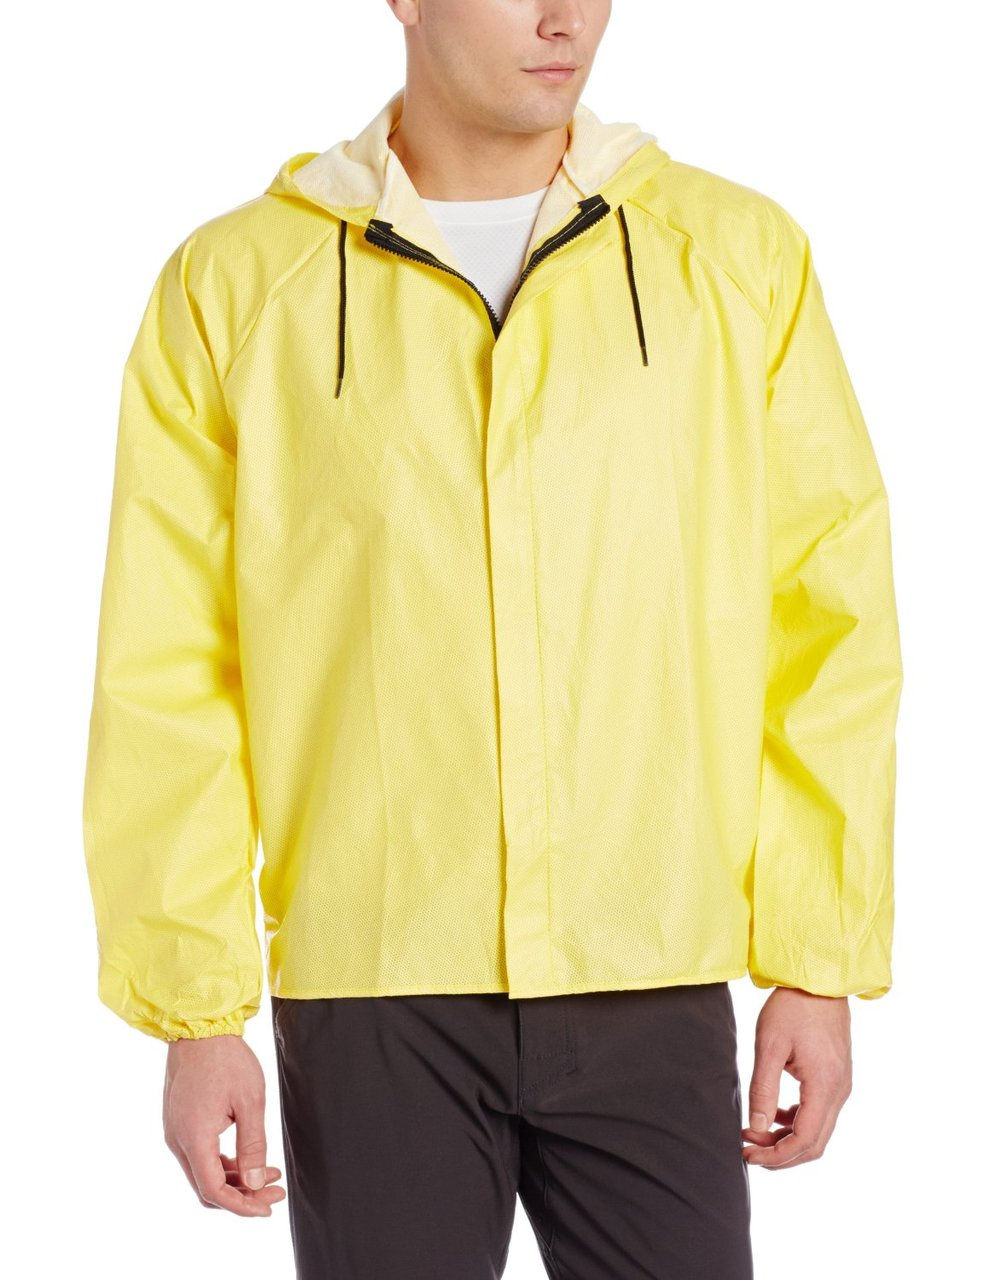 O2 Unisex Rainshield Hooded  Rain Jacket - Waterproof, Breathable, Windproof